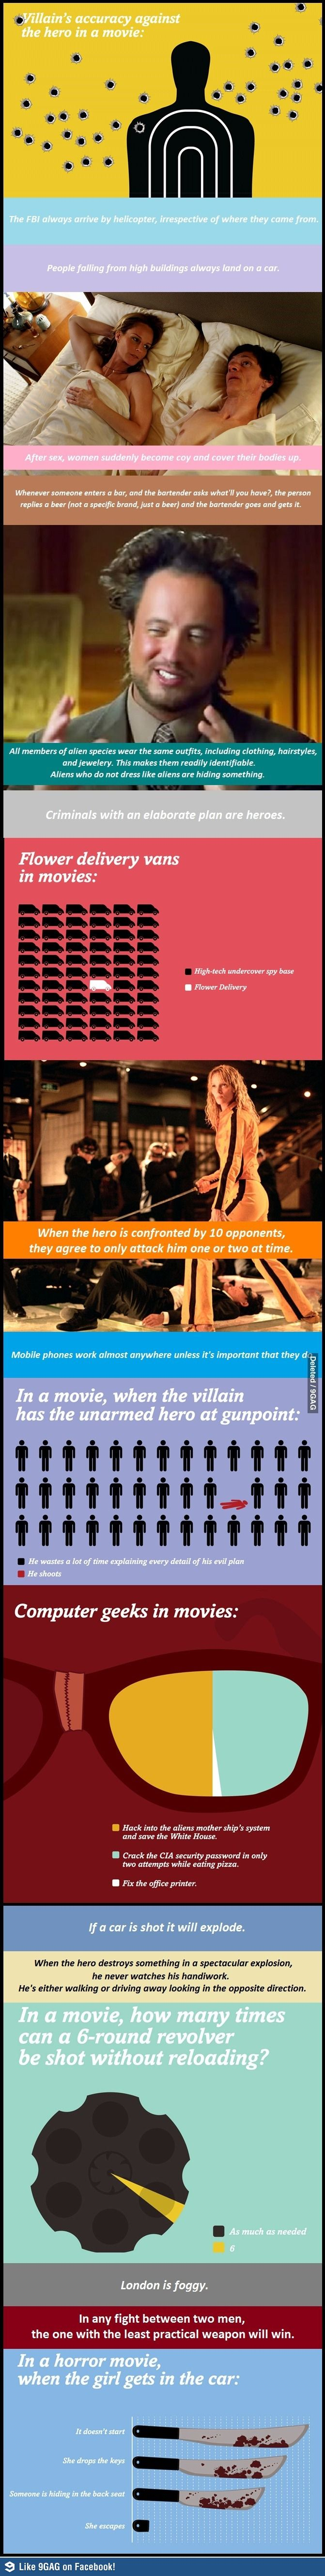 Some movie facts